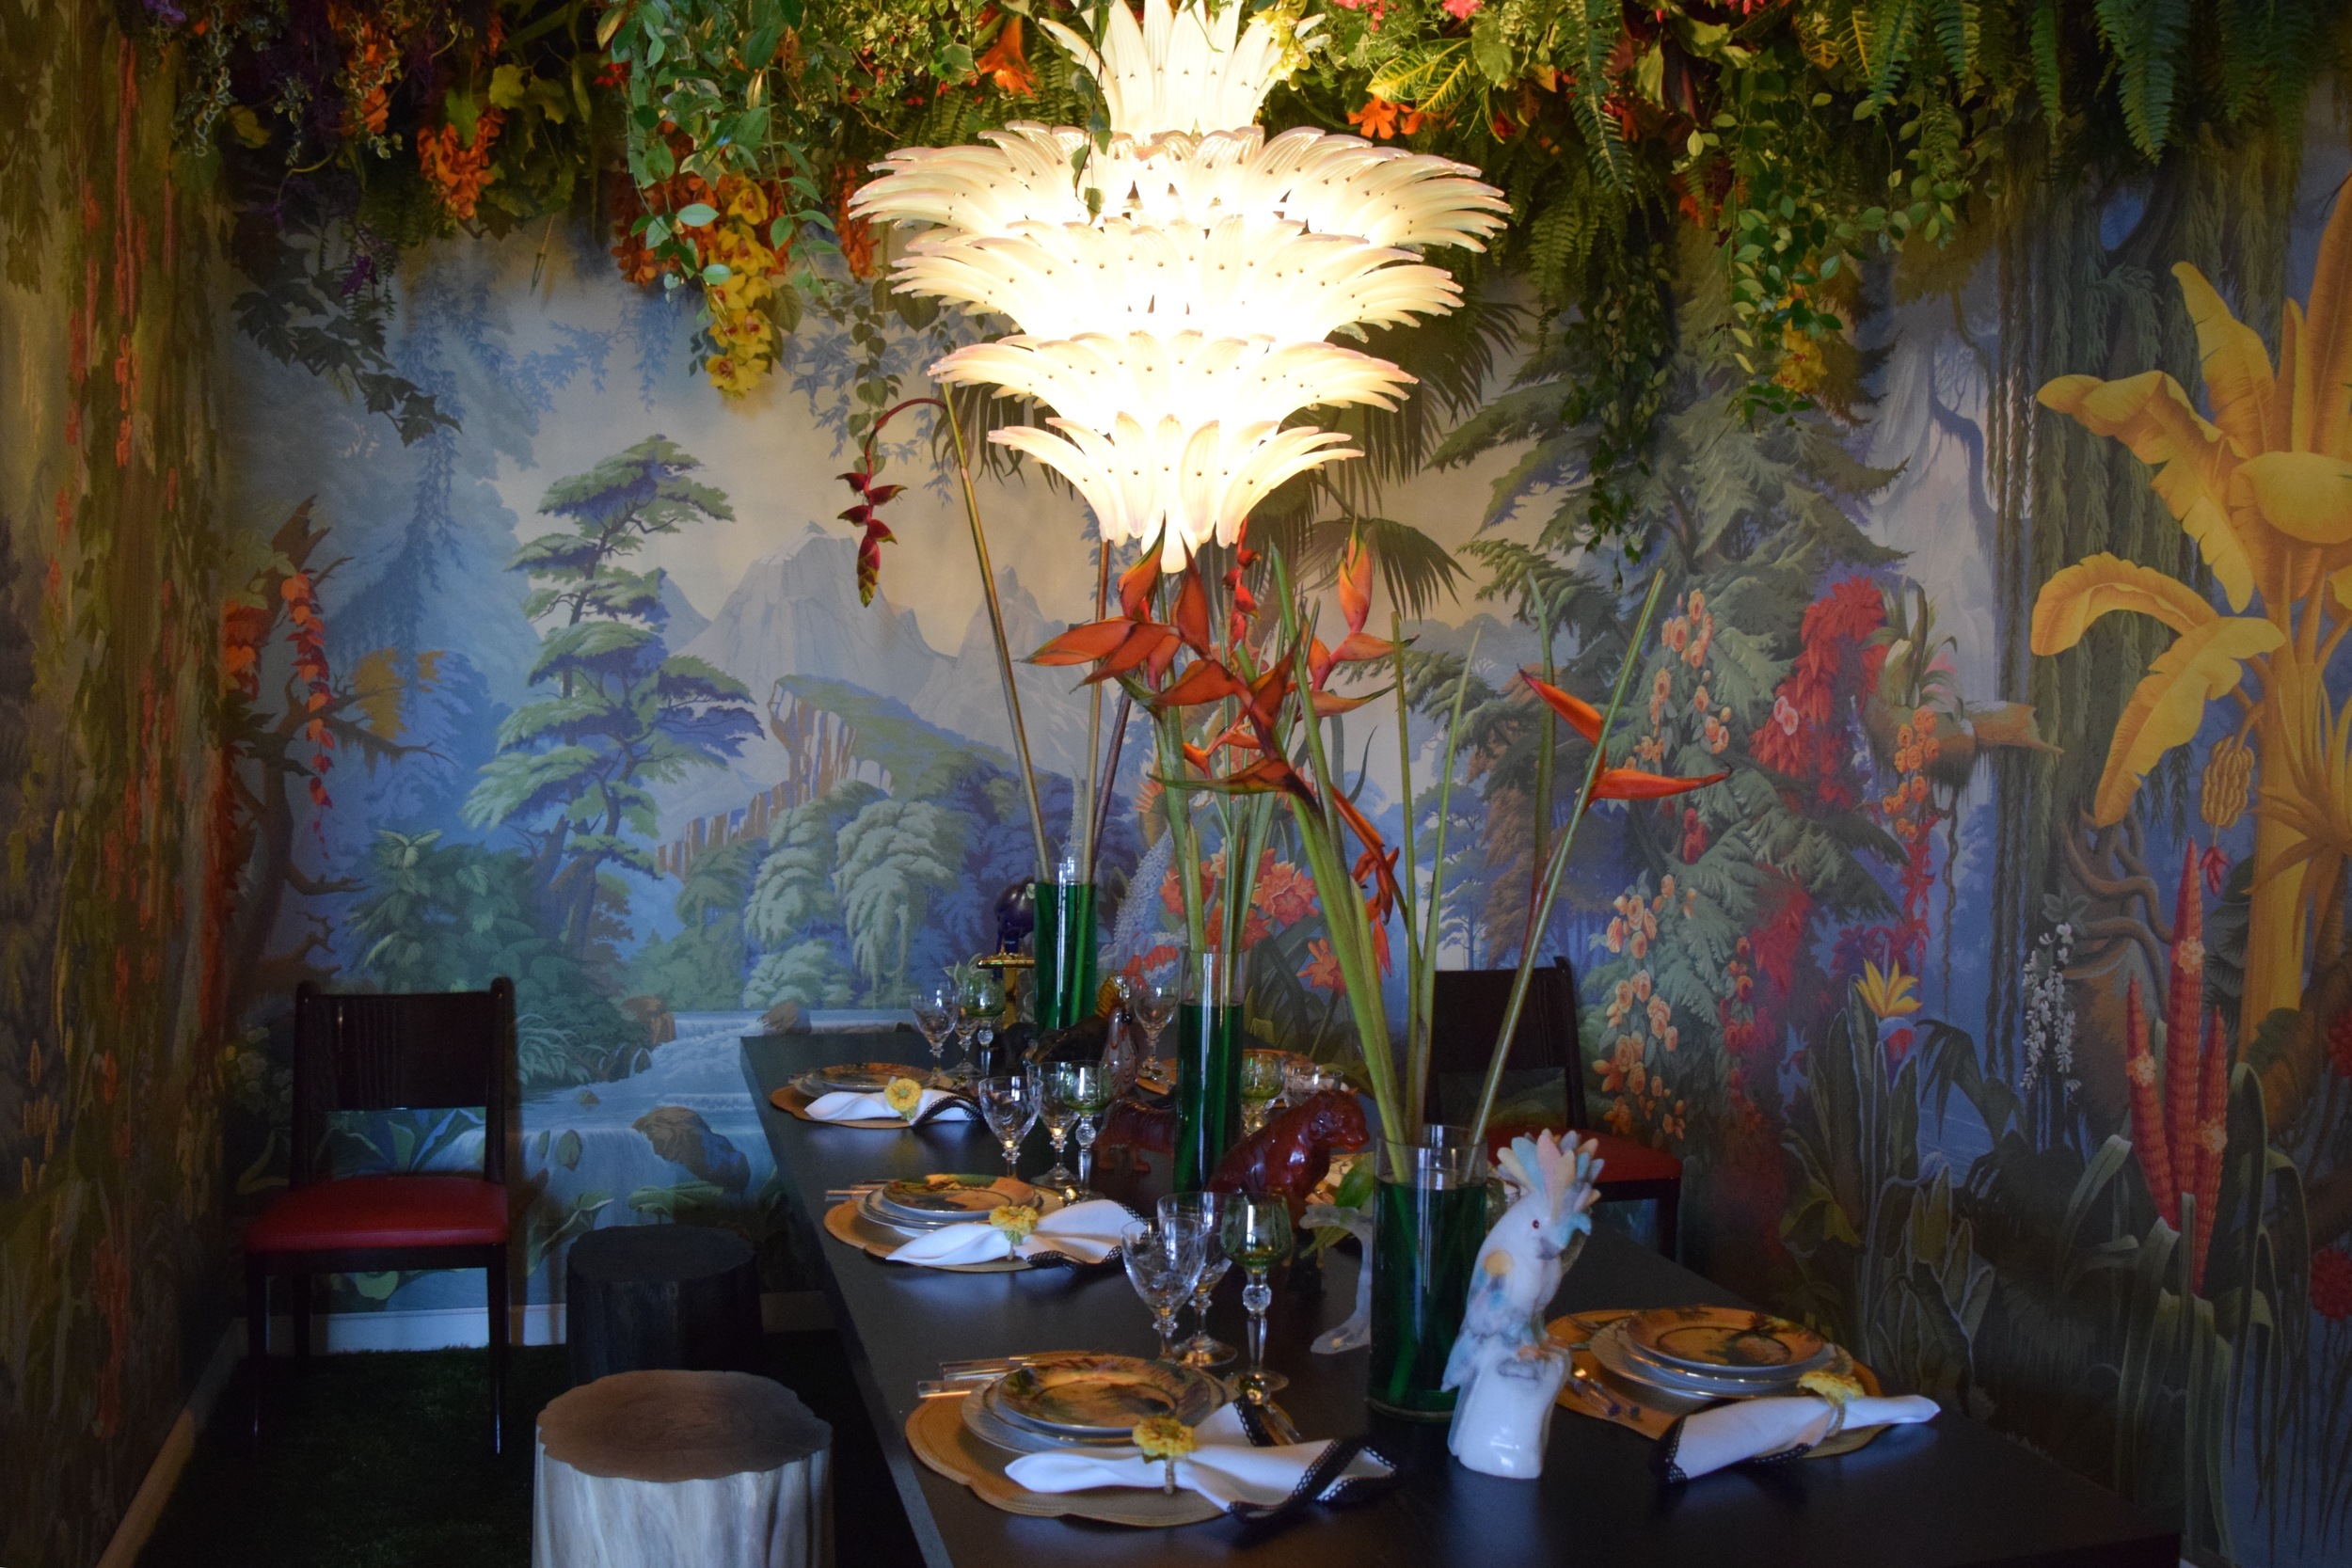 """""""Christian Liagre is known for amazingly chic and sleek woodwork, so this space translates that into something more vibrant that displays the furniture in a new light with de Gournay's 'Le Eden' wallpaper transforming the room into a rainforest."""""""